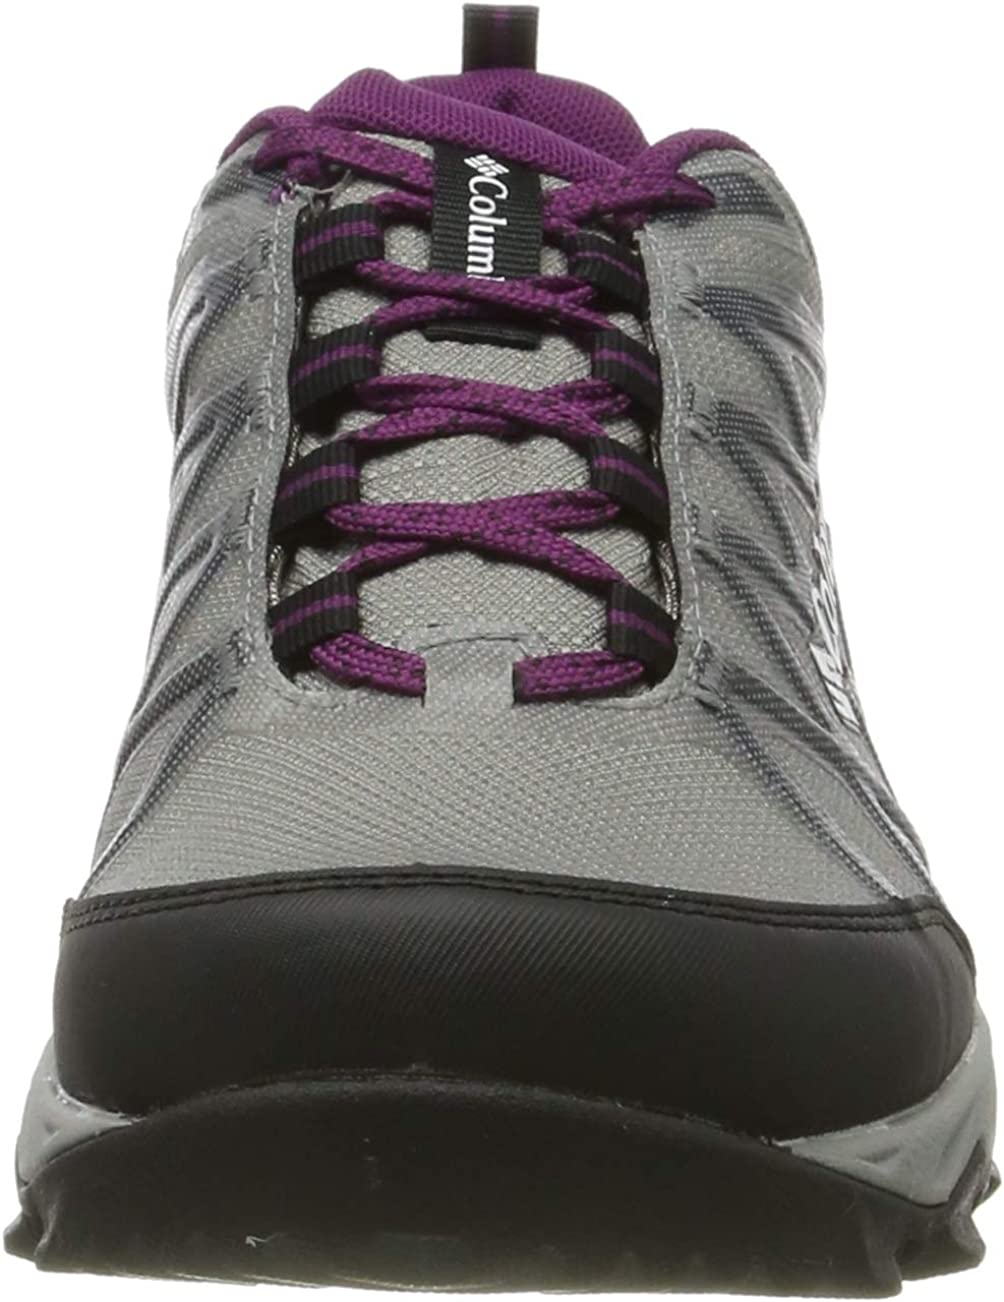 Femme Columbia Chaussures